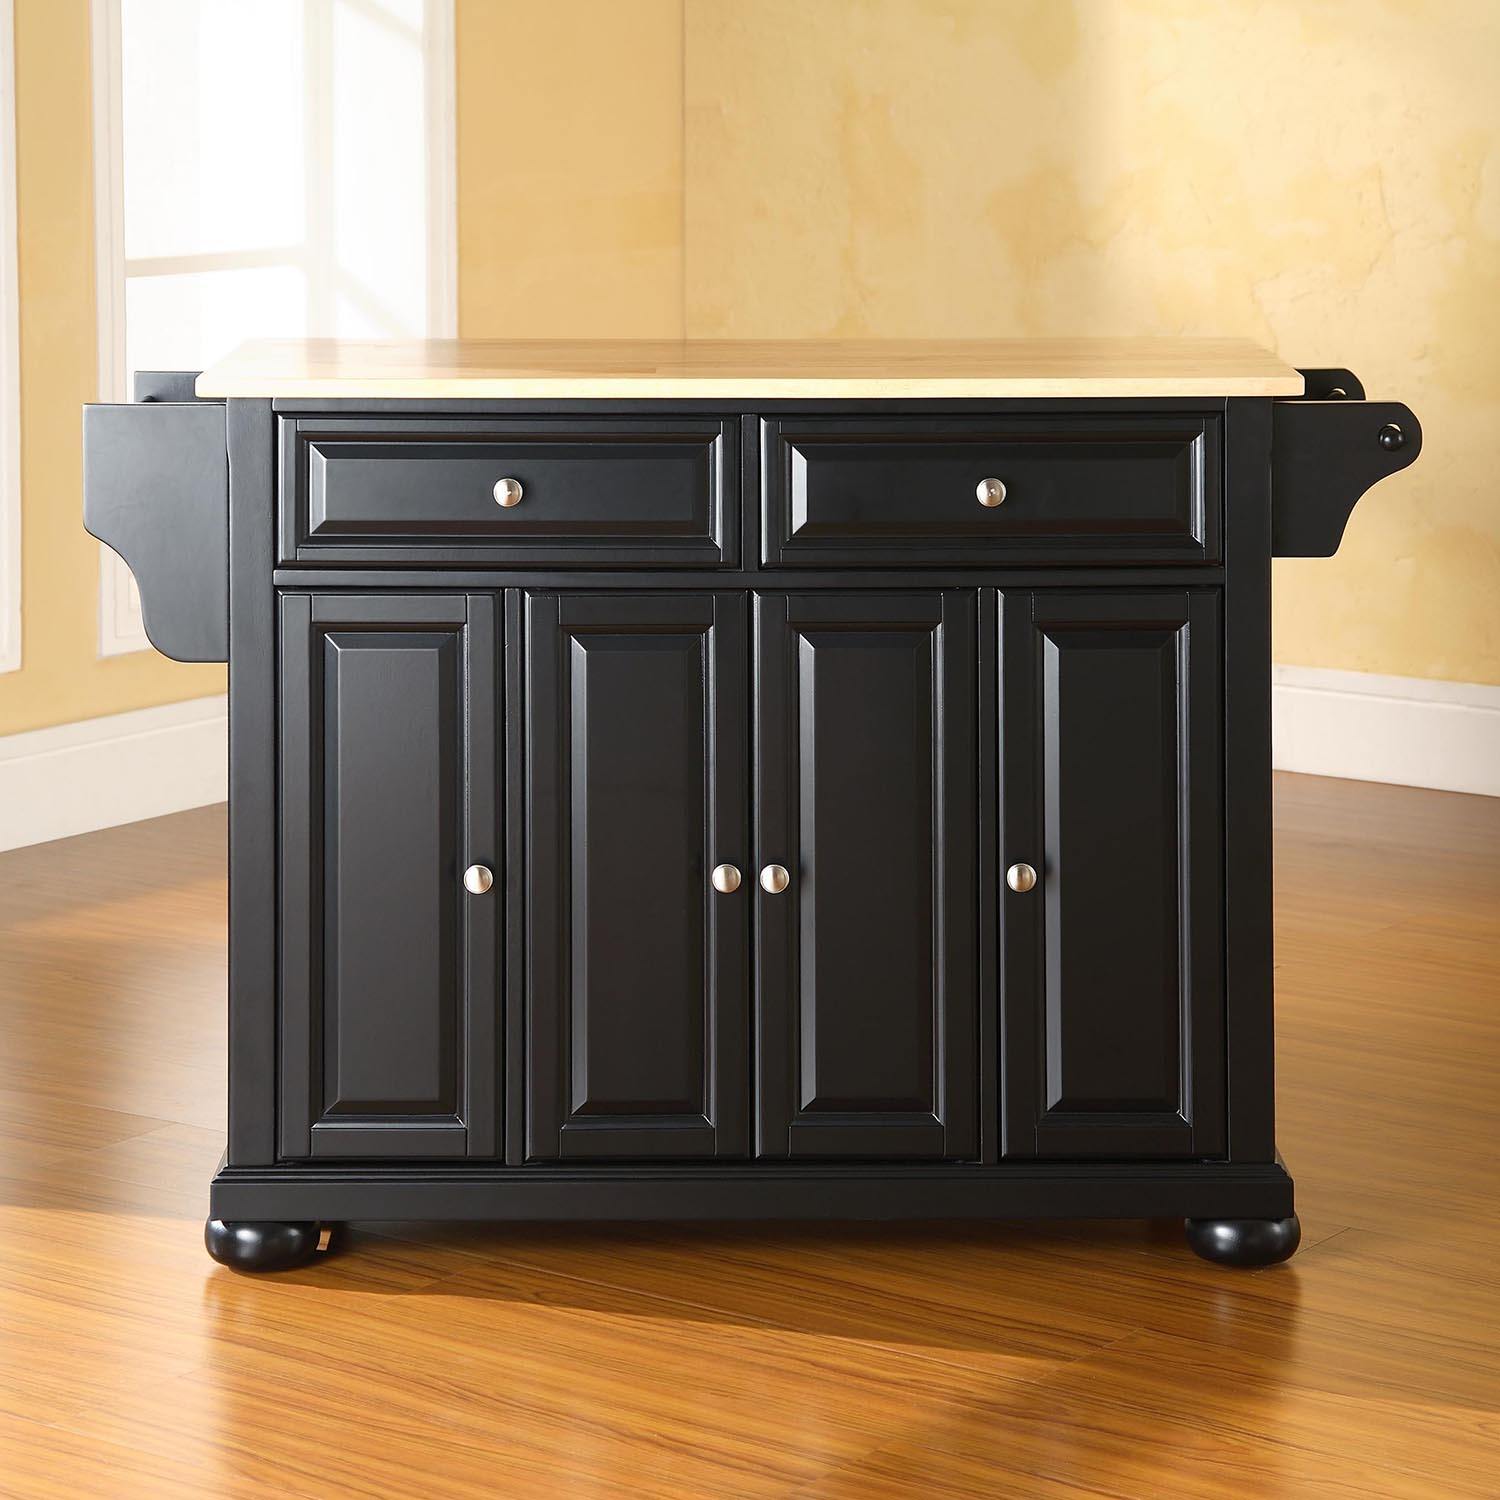 Alexandria Natural Wood Top Kitchen Island - Black - CROS-KF30001ABK